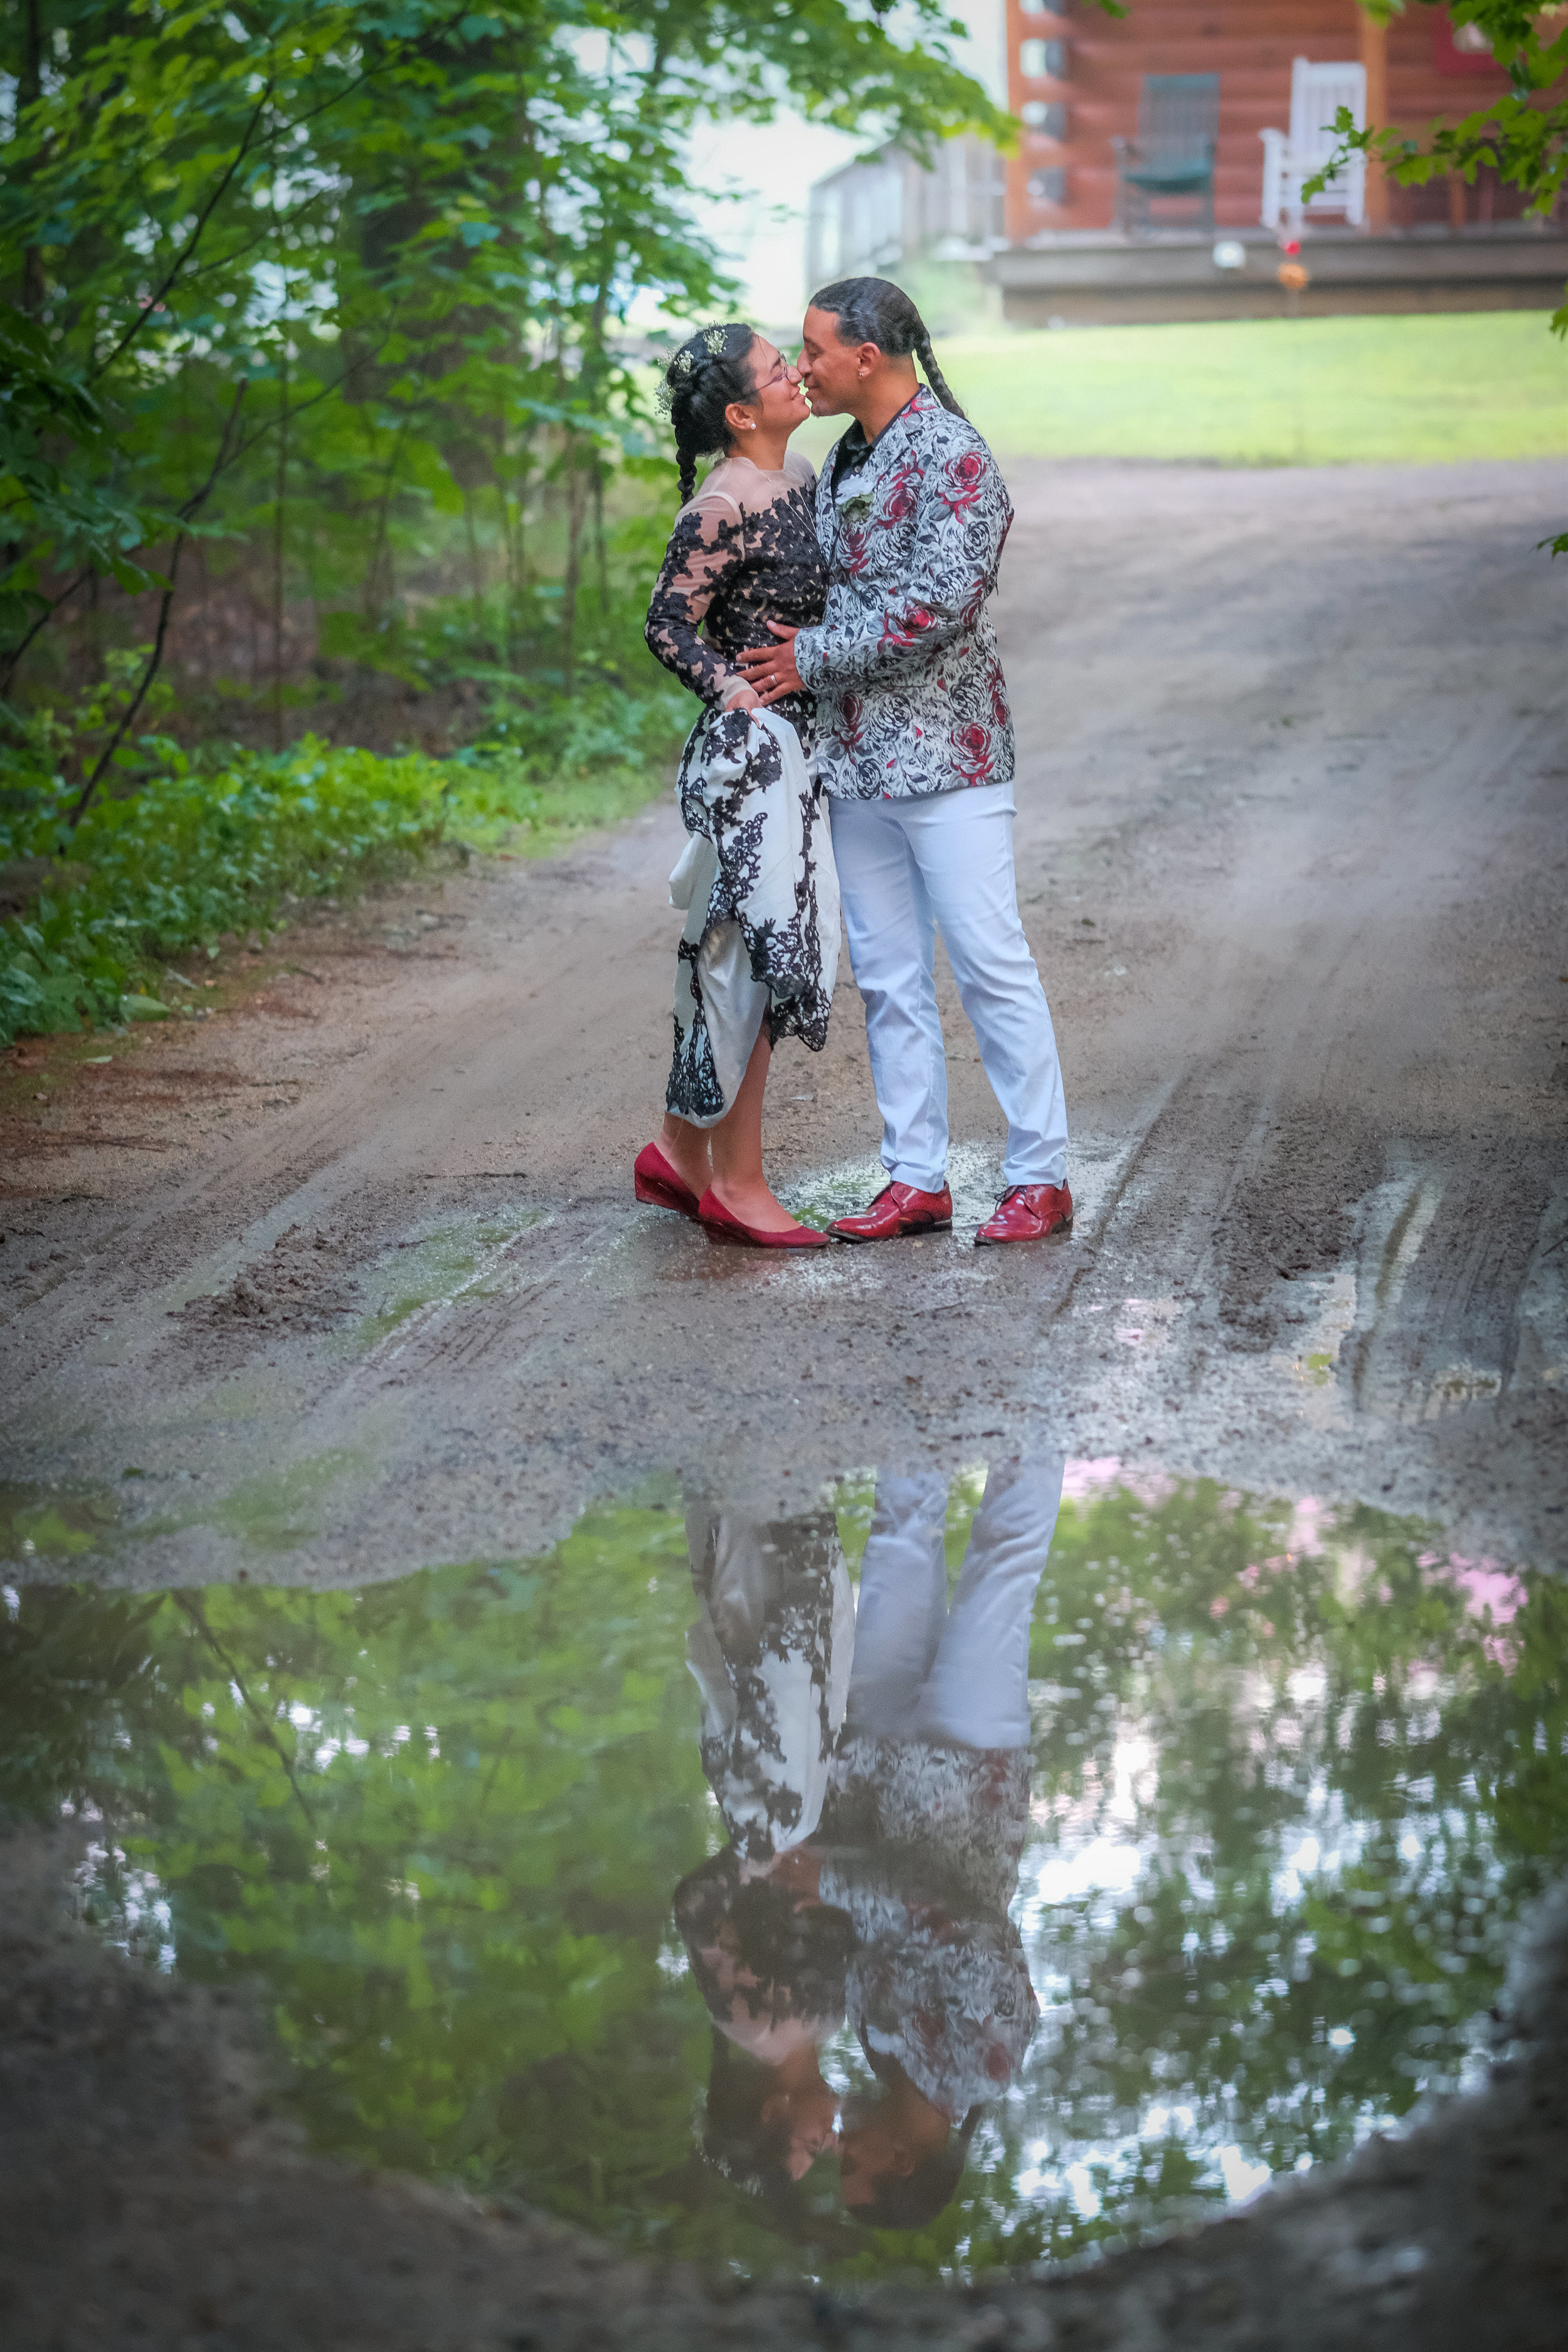 southern-nh-rustic-elopement-475.jpg